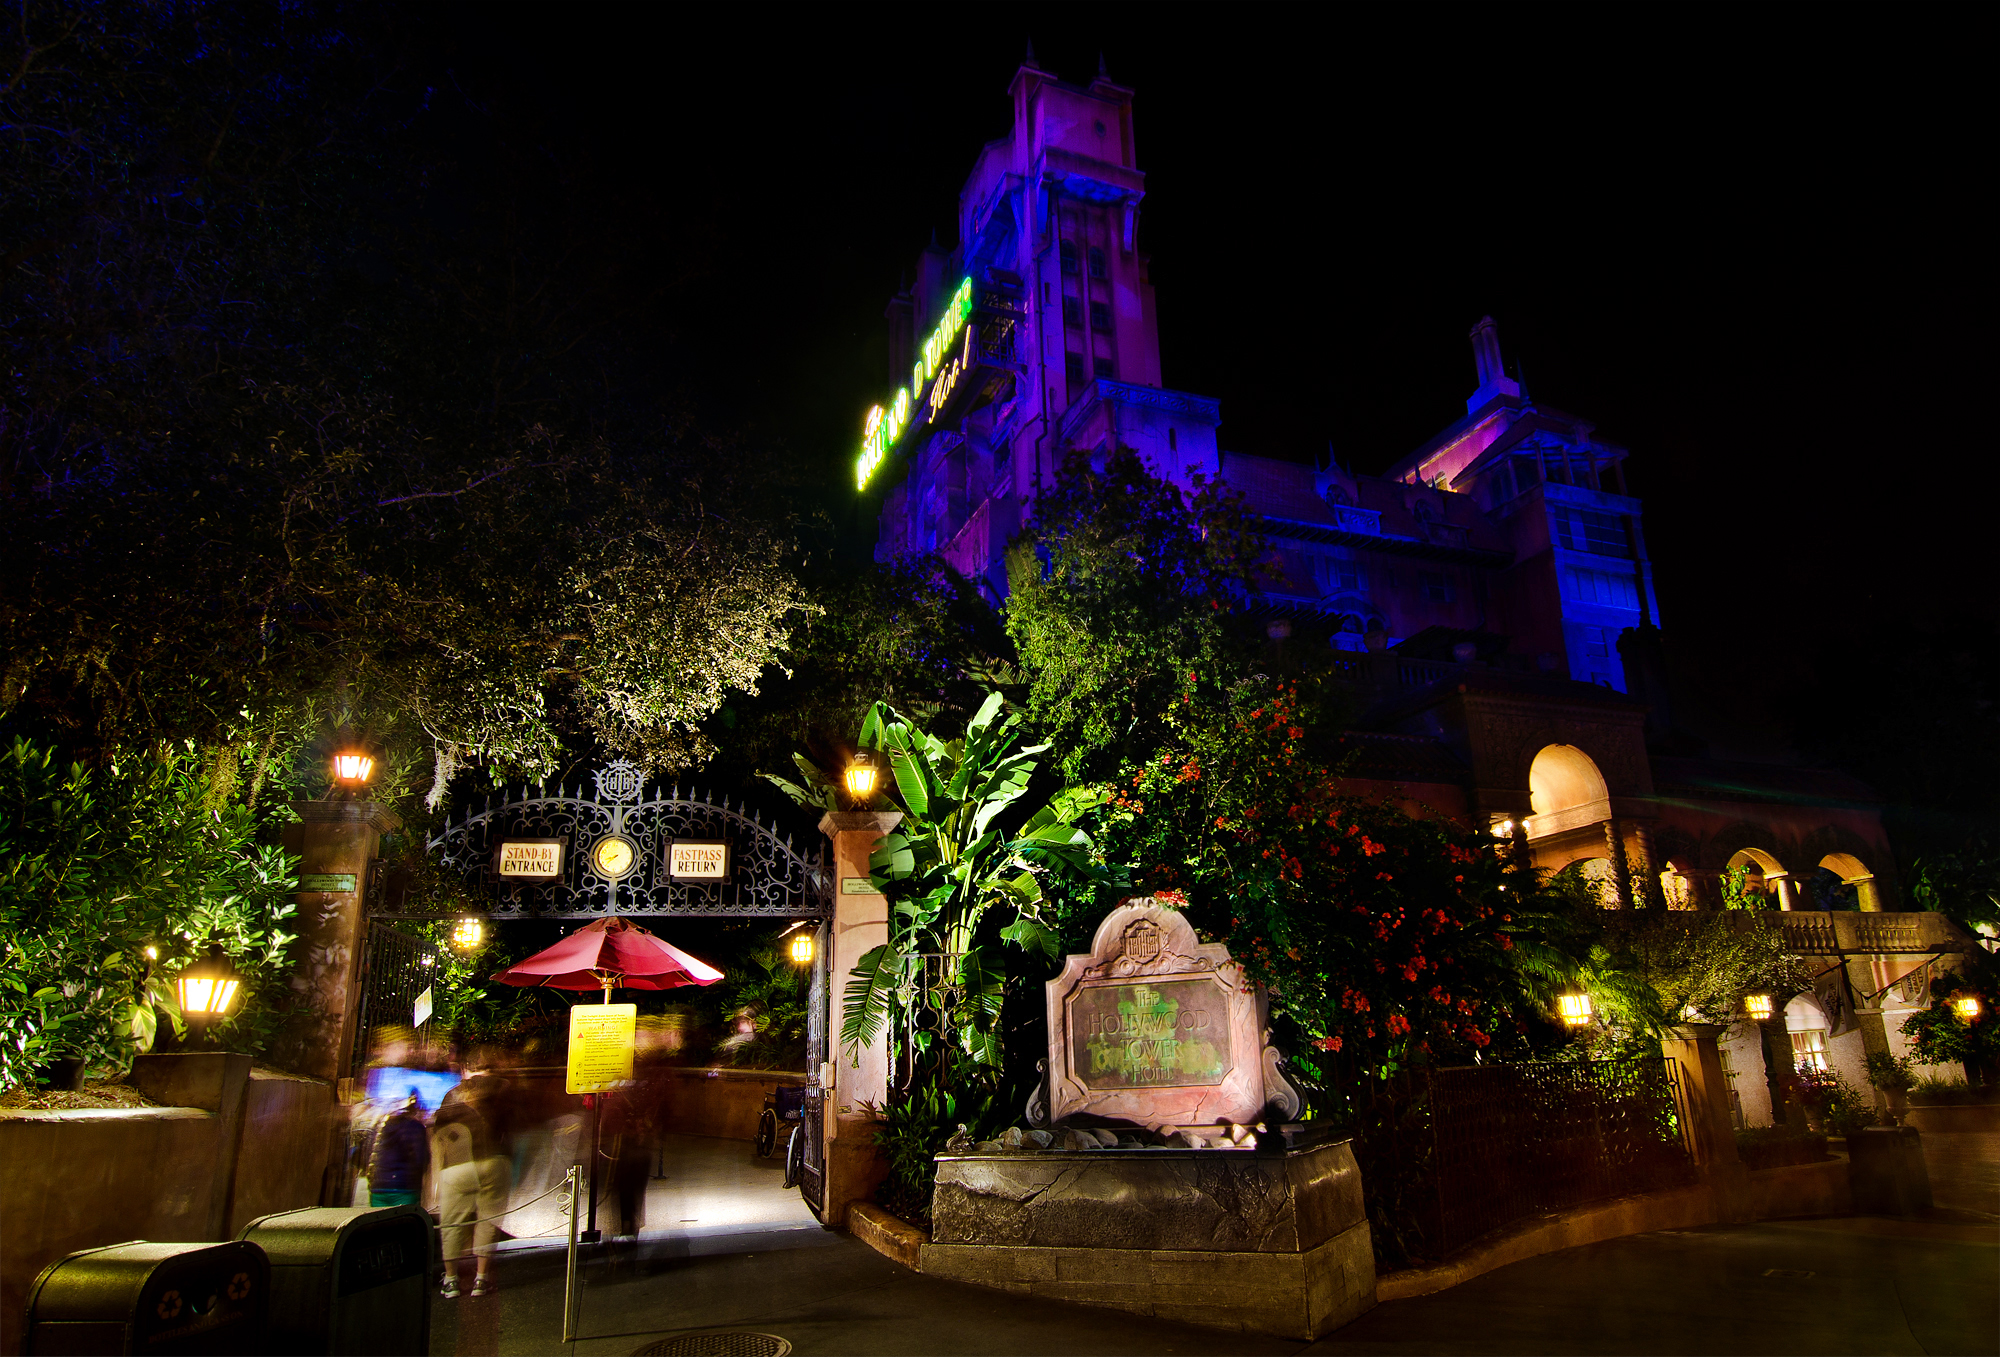 Tower of Terror night photo